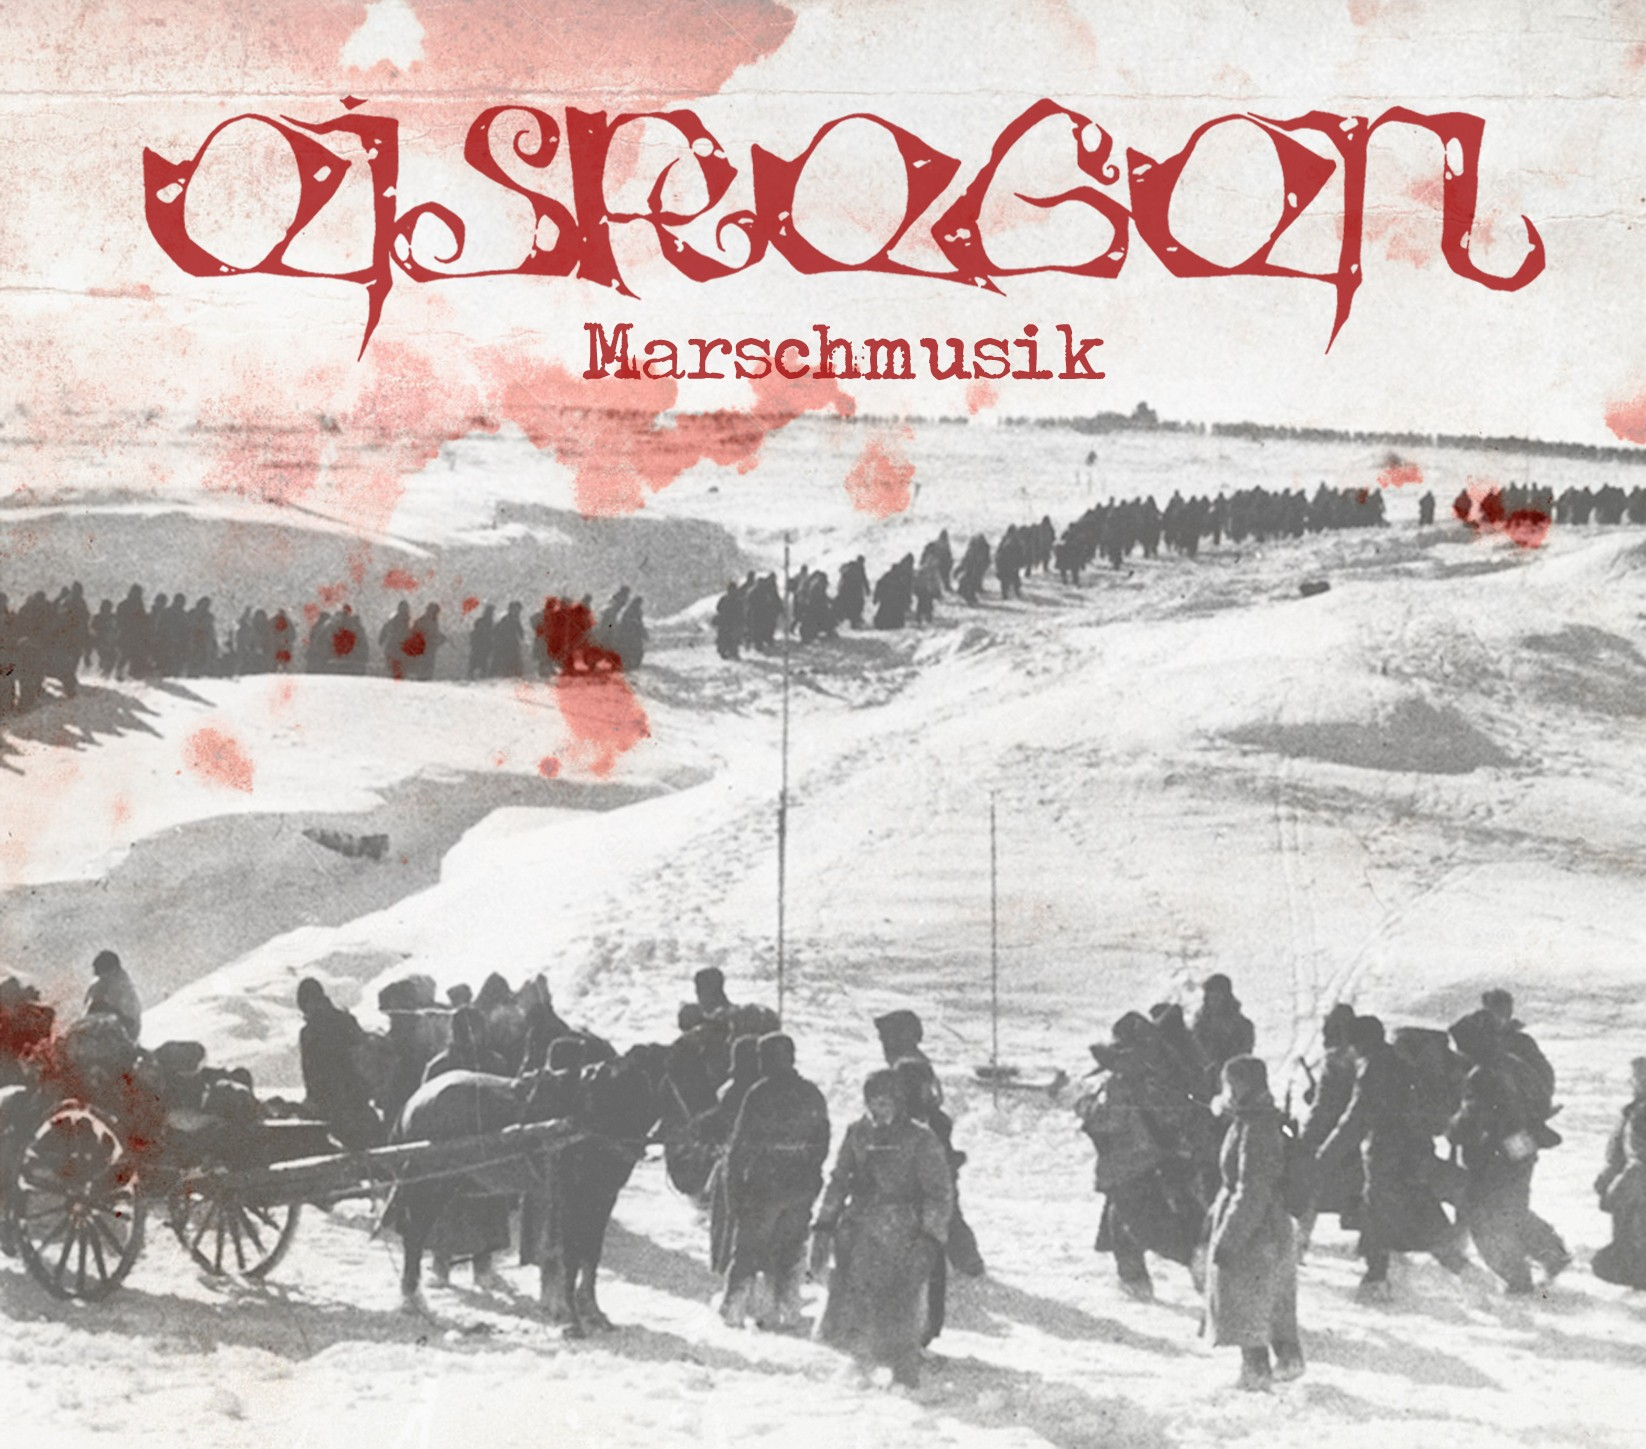 Eisregen - Marschmusik - CD - Limited DigiPak